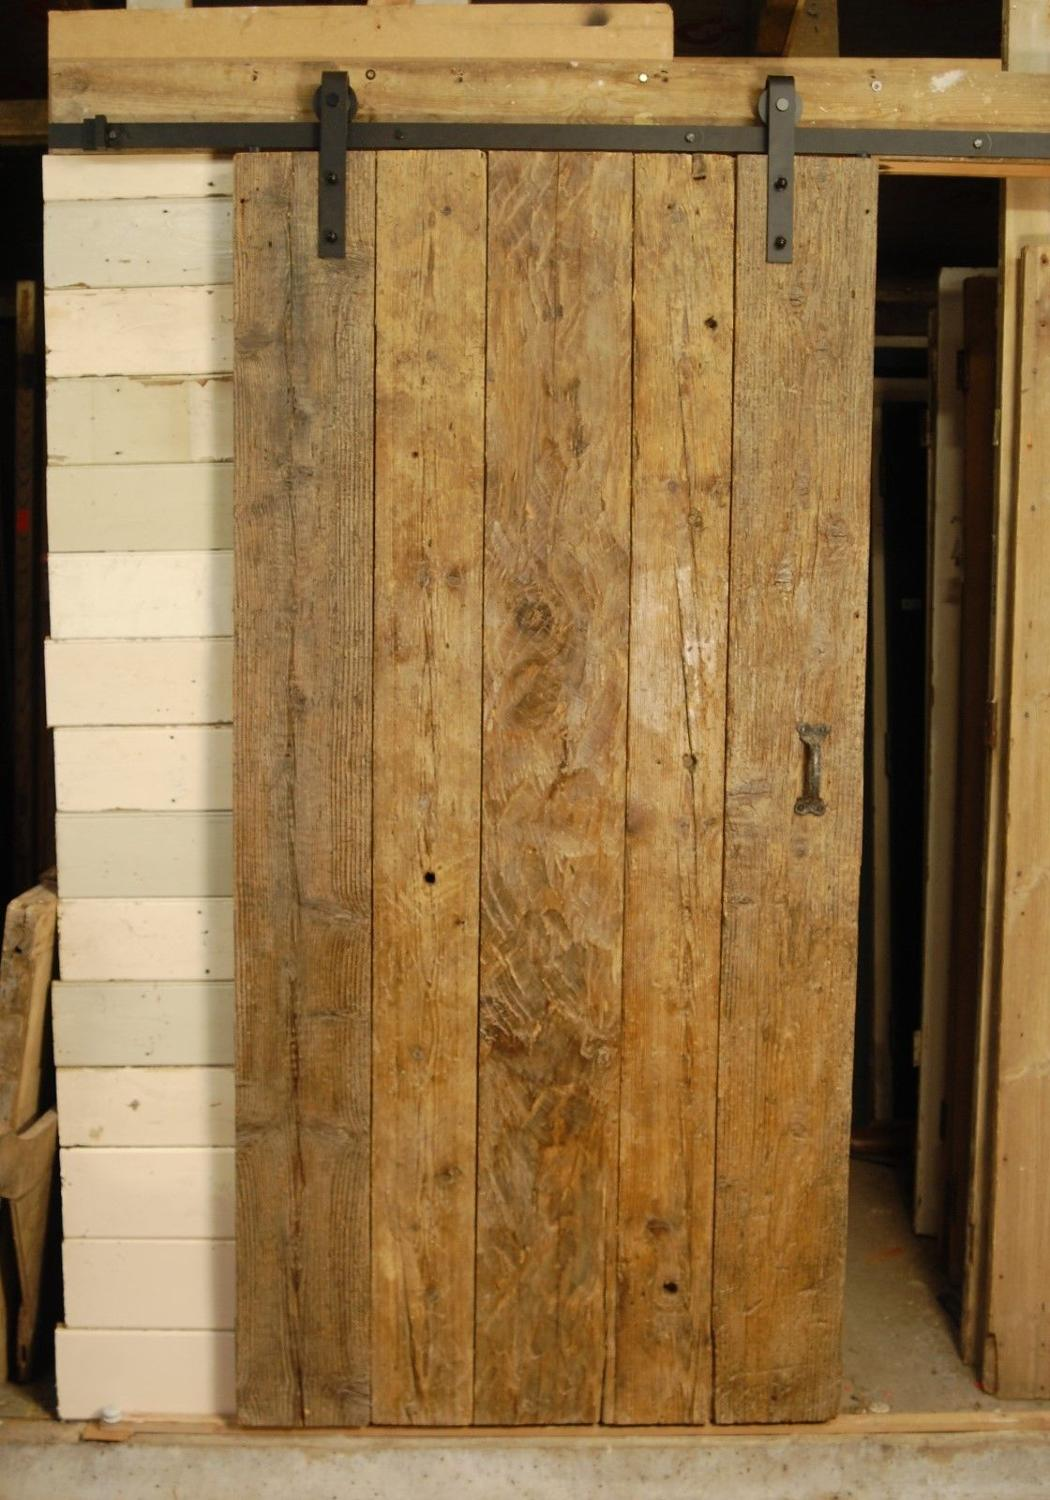 Fantastic rustic pine sliding barn style door - can be made to measure